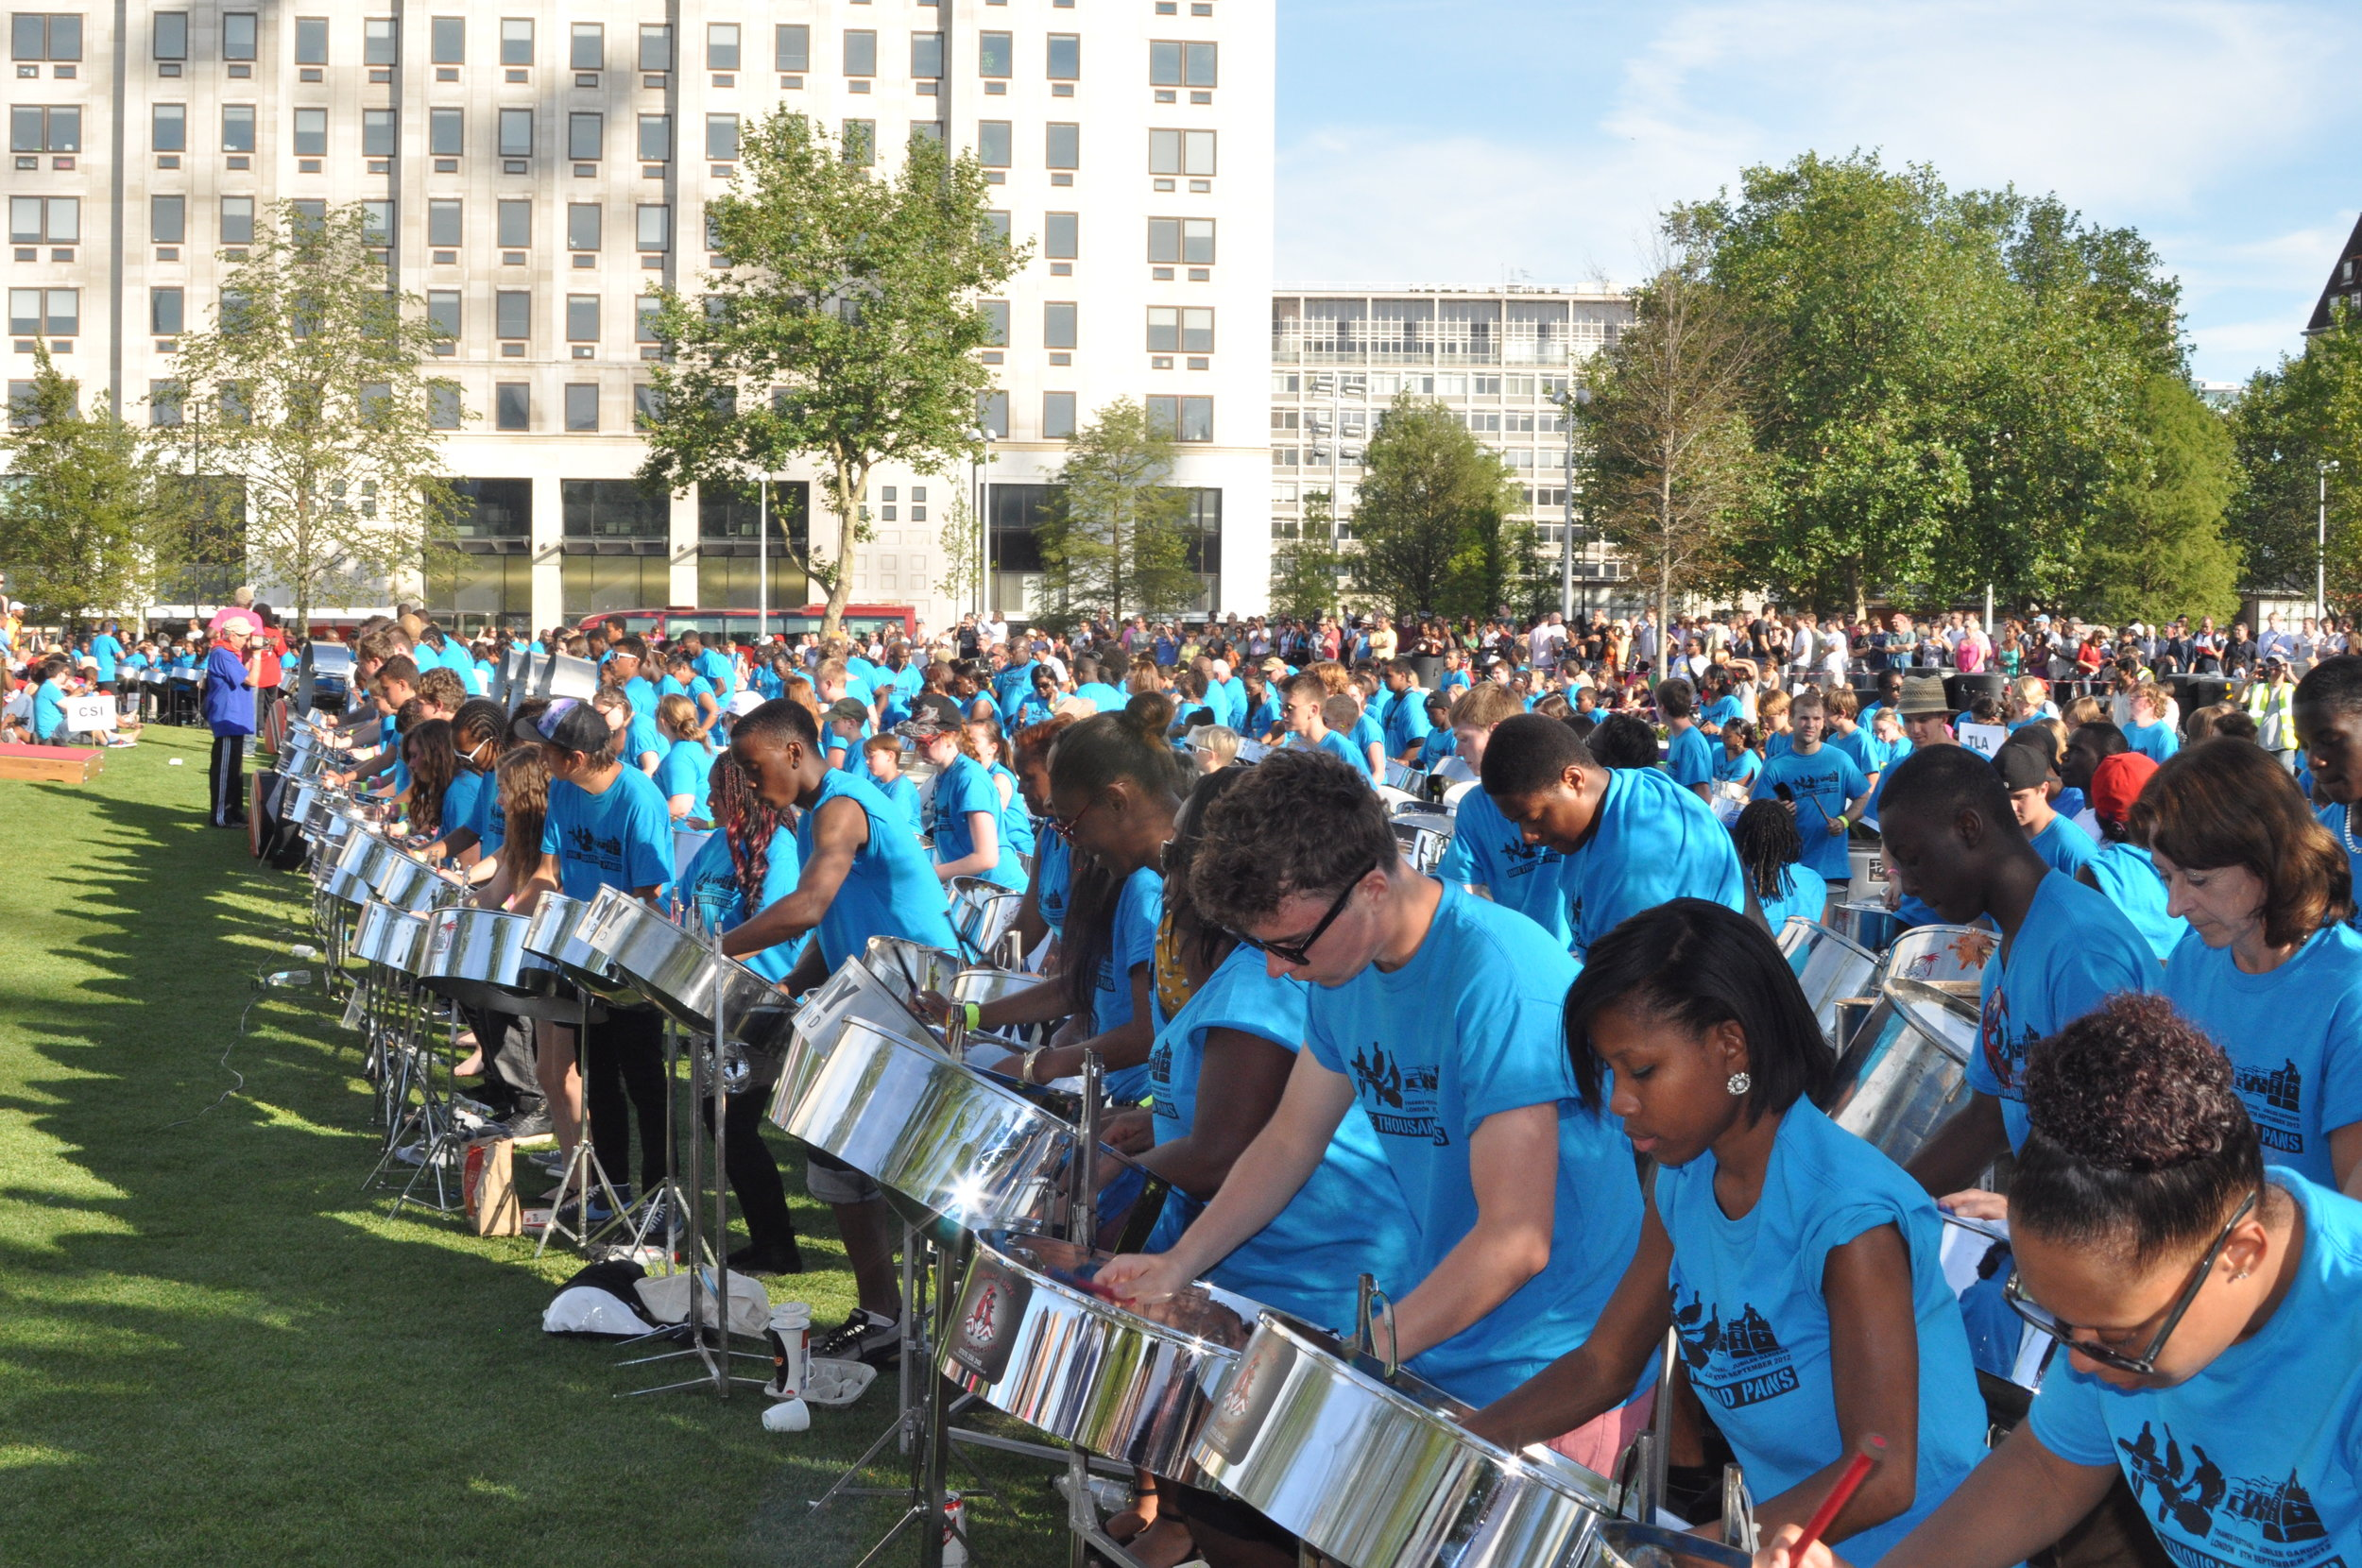 1000 Pans on the South Bank in 2012.